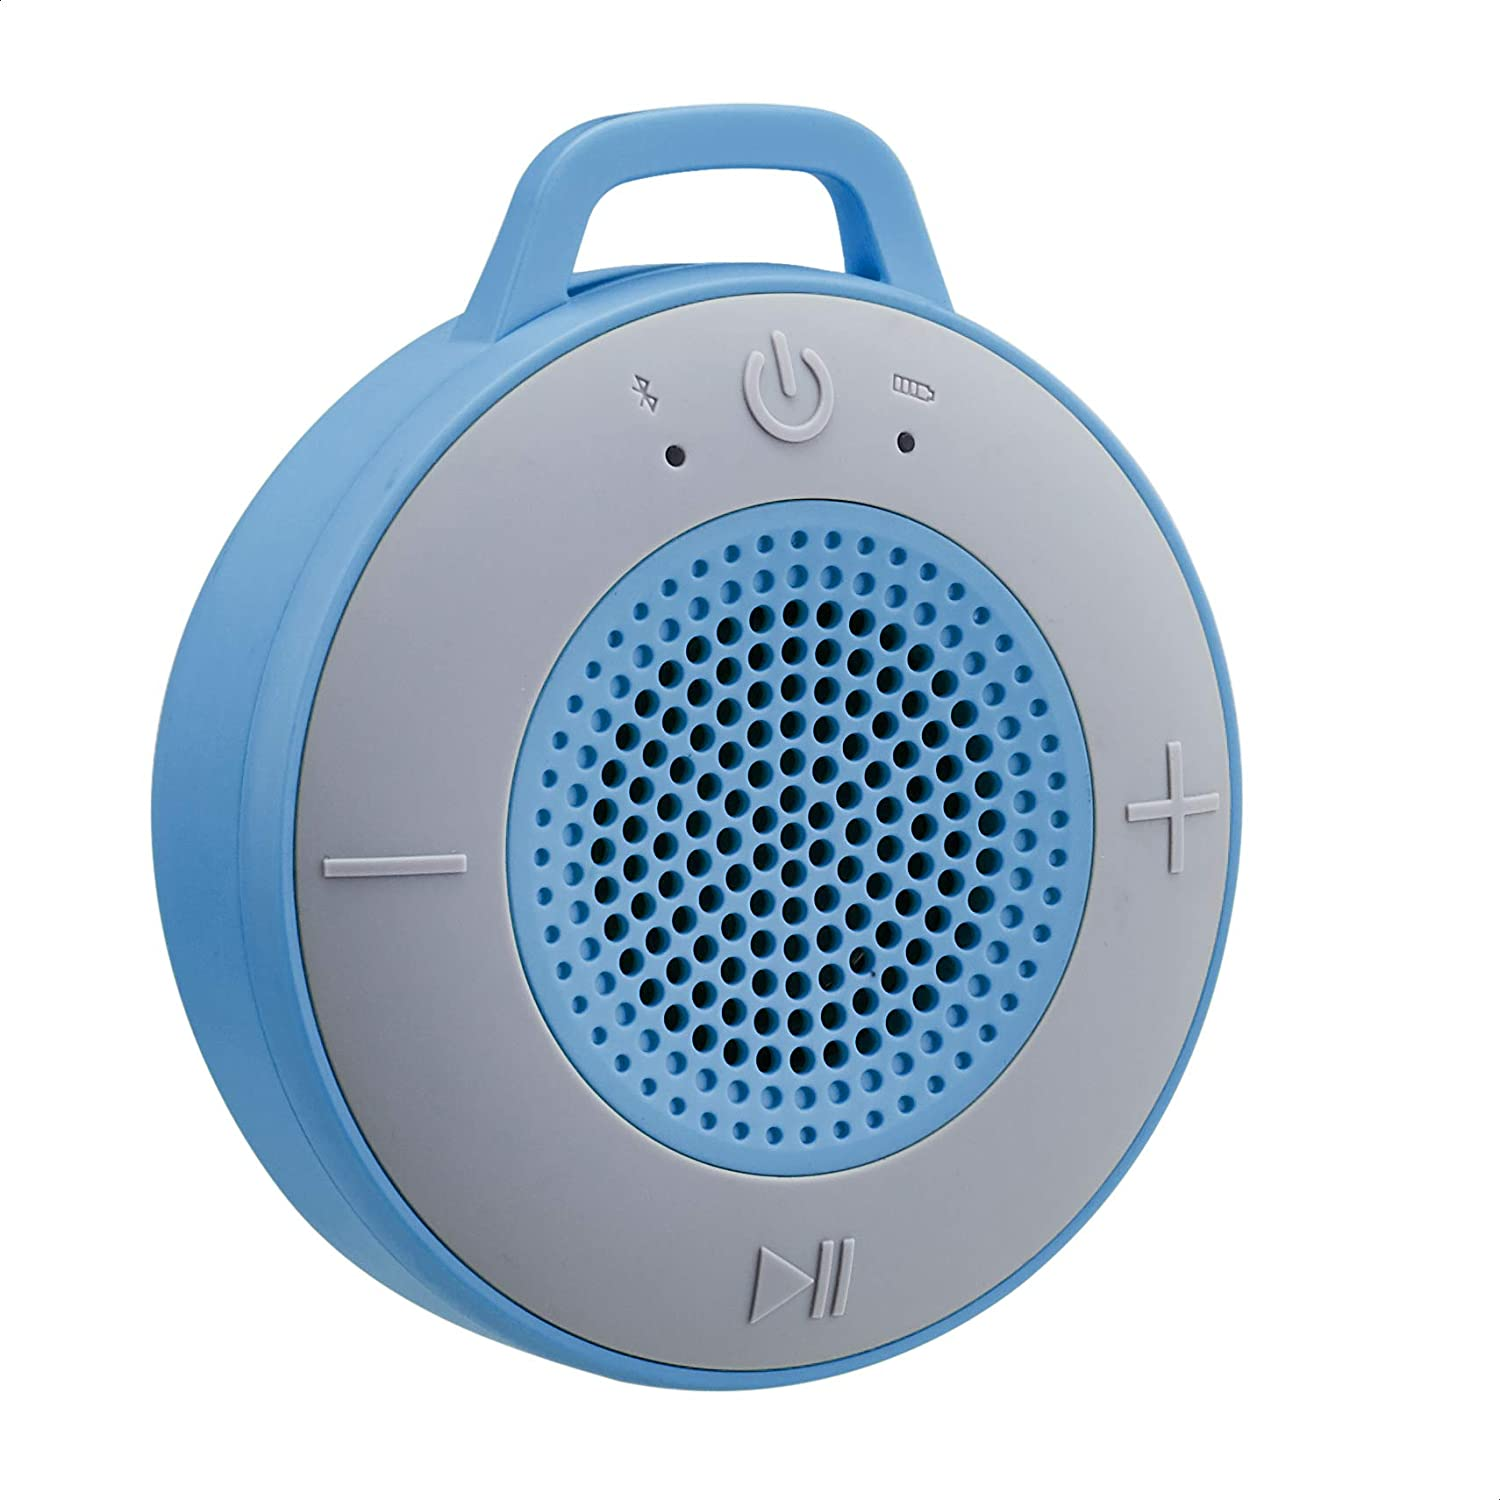 Amazon Basics Wireless Shower Speaker with 5W Driver, Suction Cup, Built-in Mic - Blue